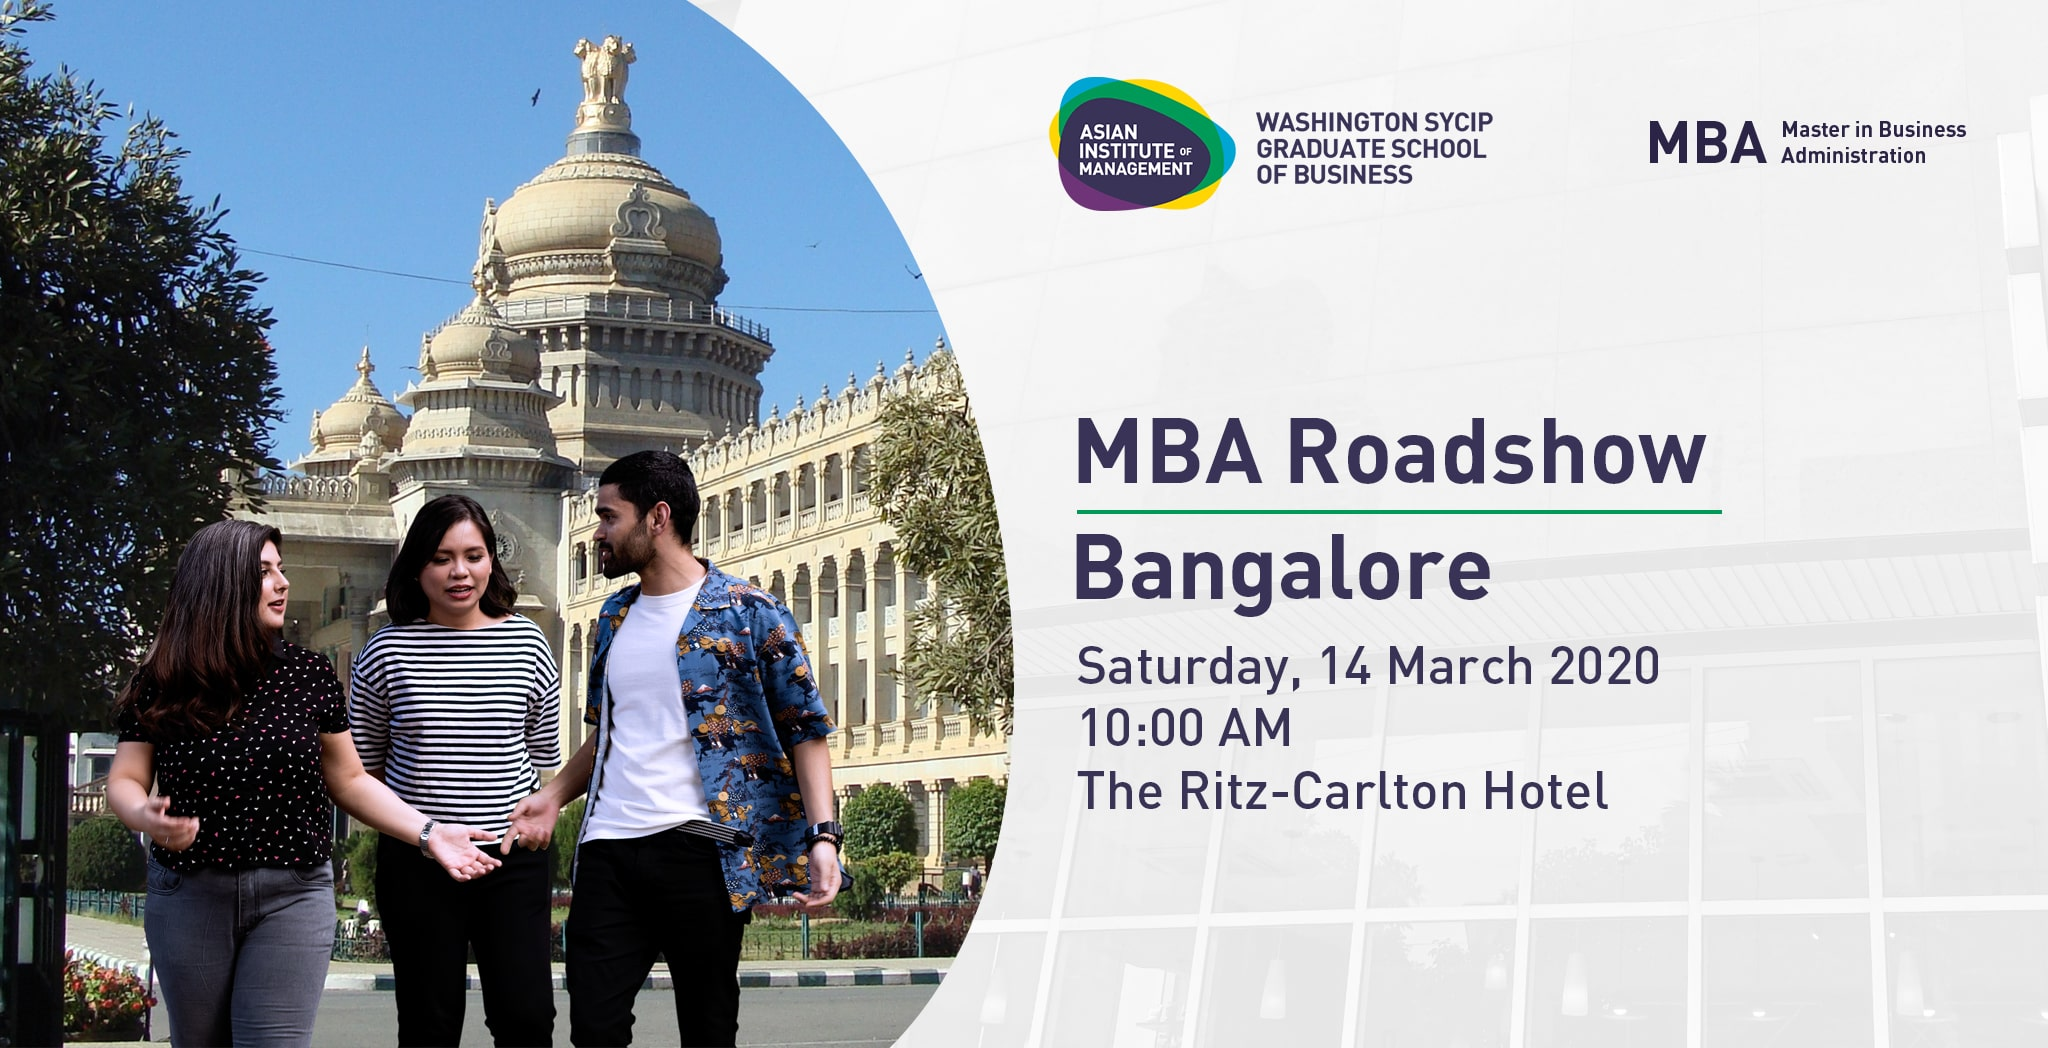 MBA Roadshow Bangalore